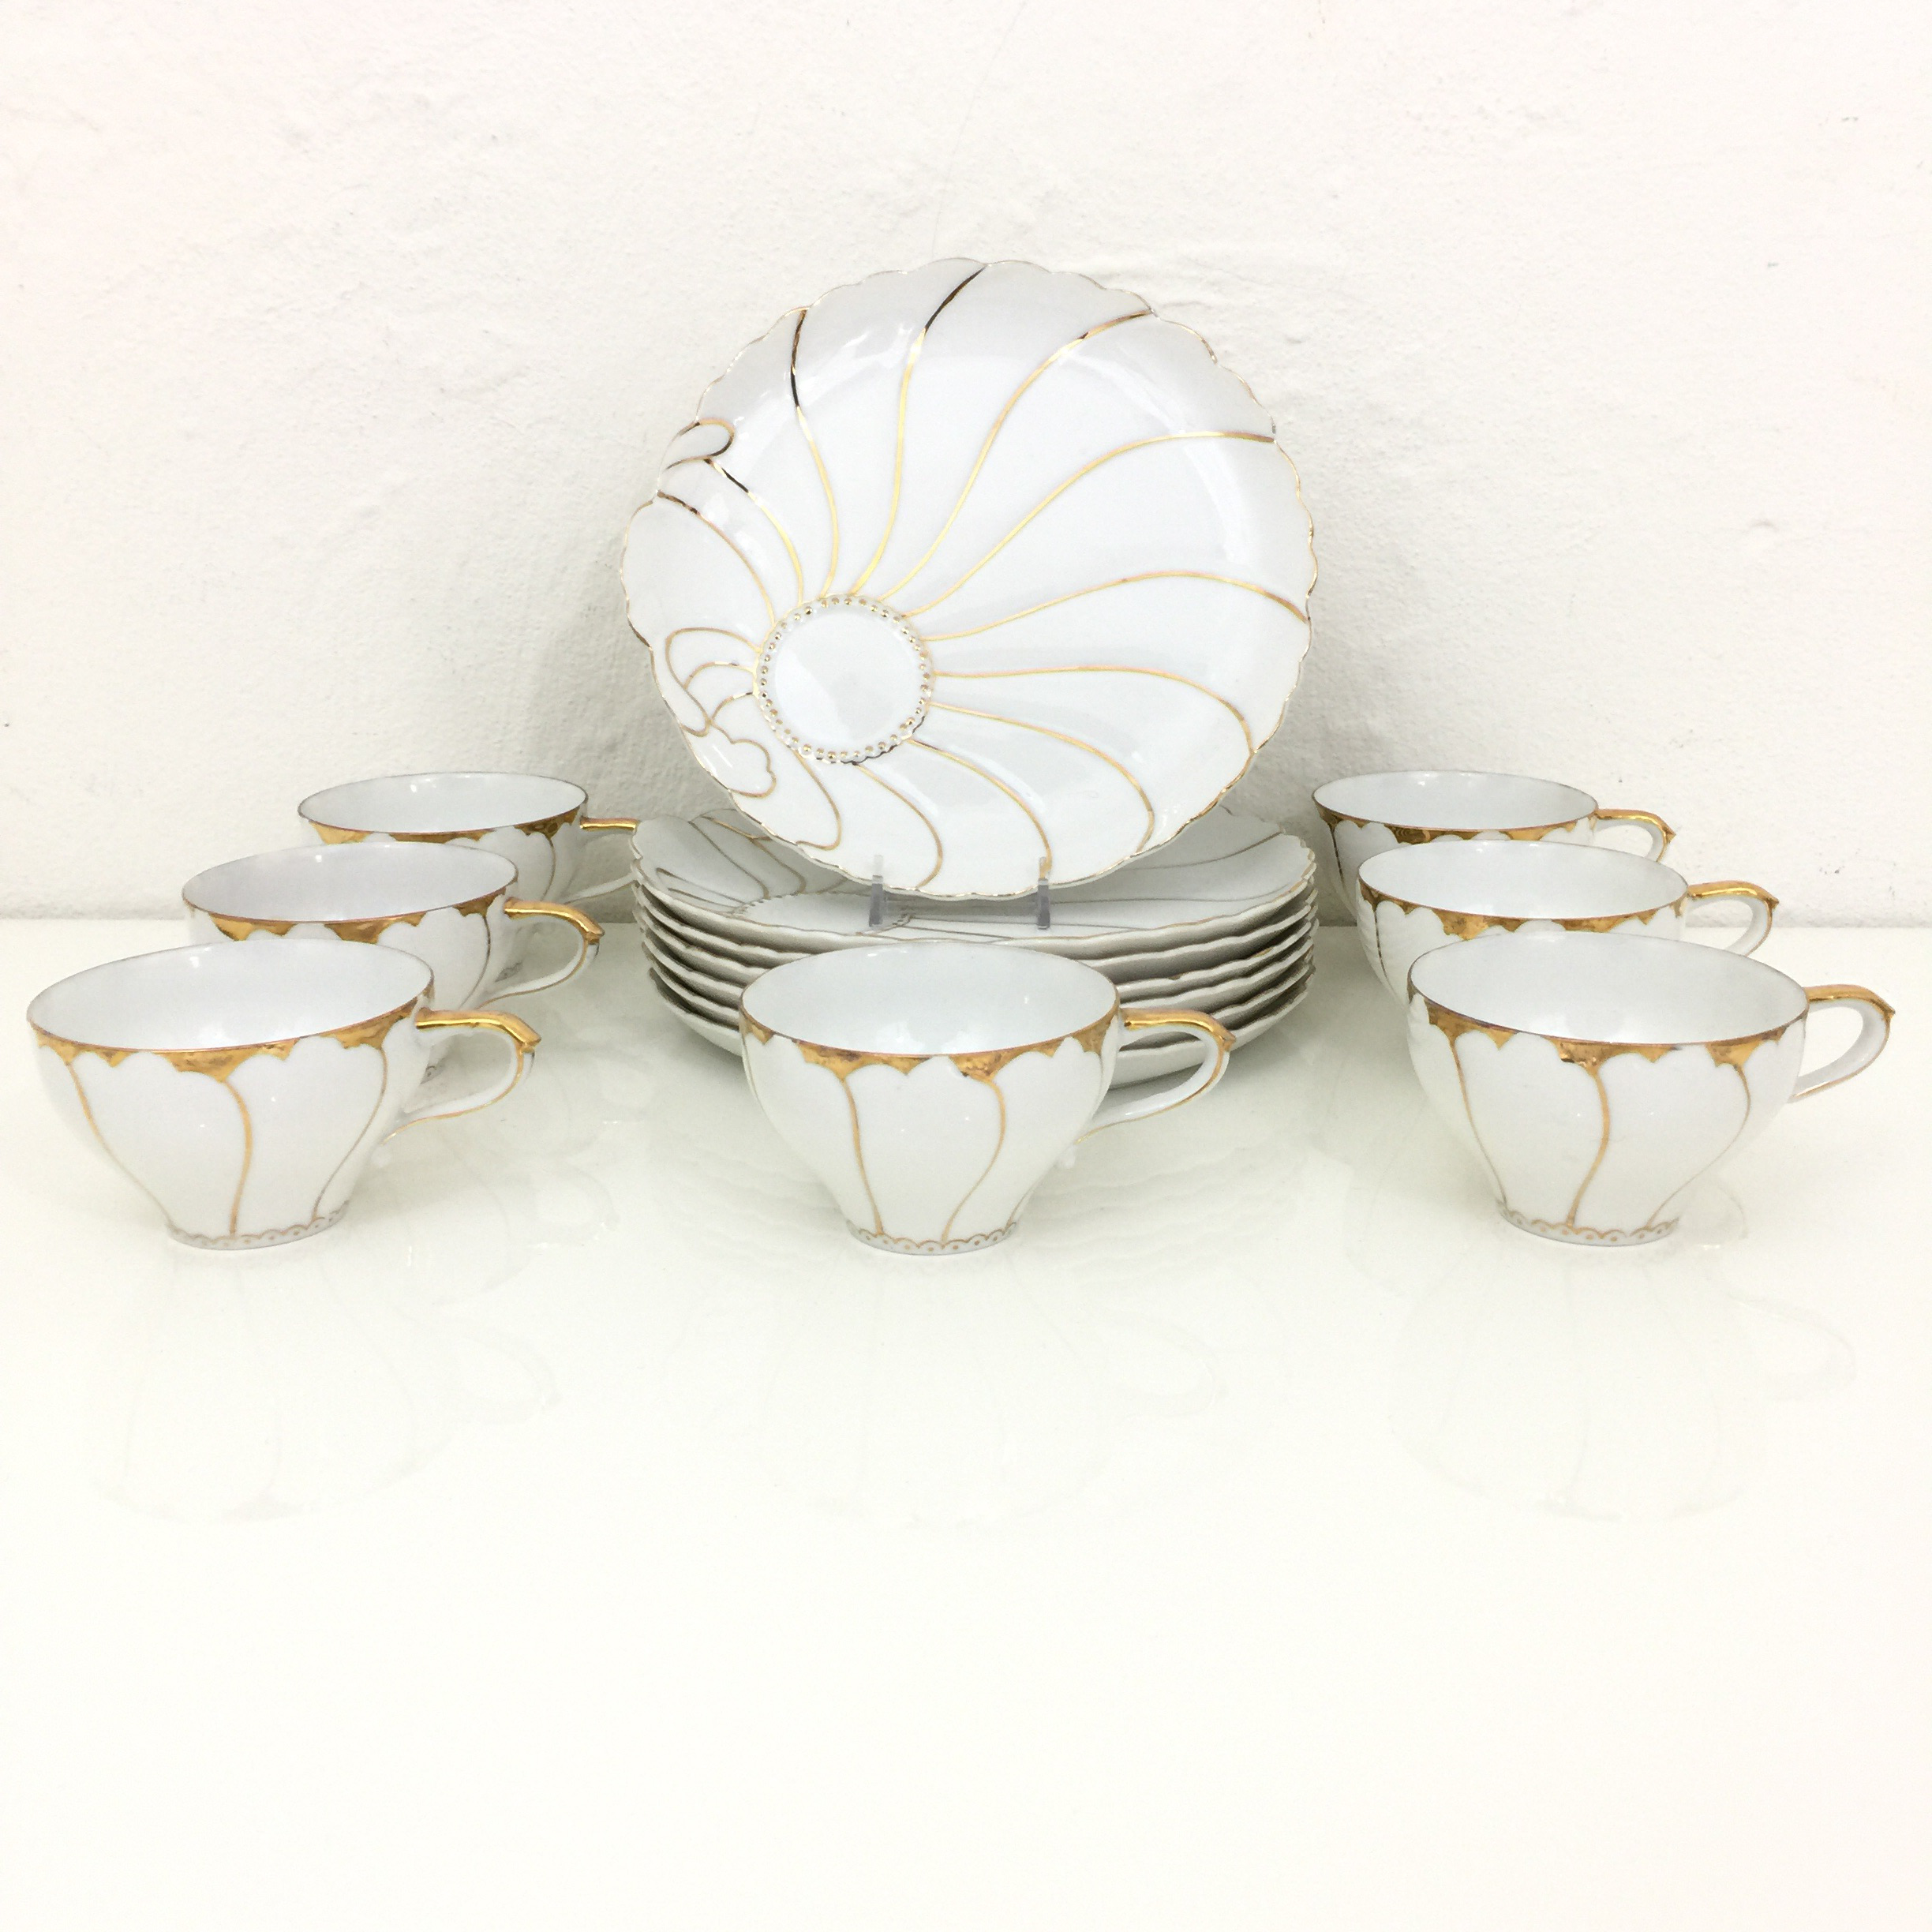 Vintage Japanese Porcelain Tea Cup \u0026 Dessert Plates - Set of 7 - Image 3 of & Vintage Japanese Porcelain Tea Cup \u0026 Dessert Plates - Set of 7 ...